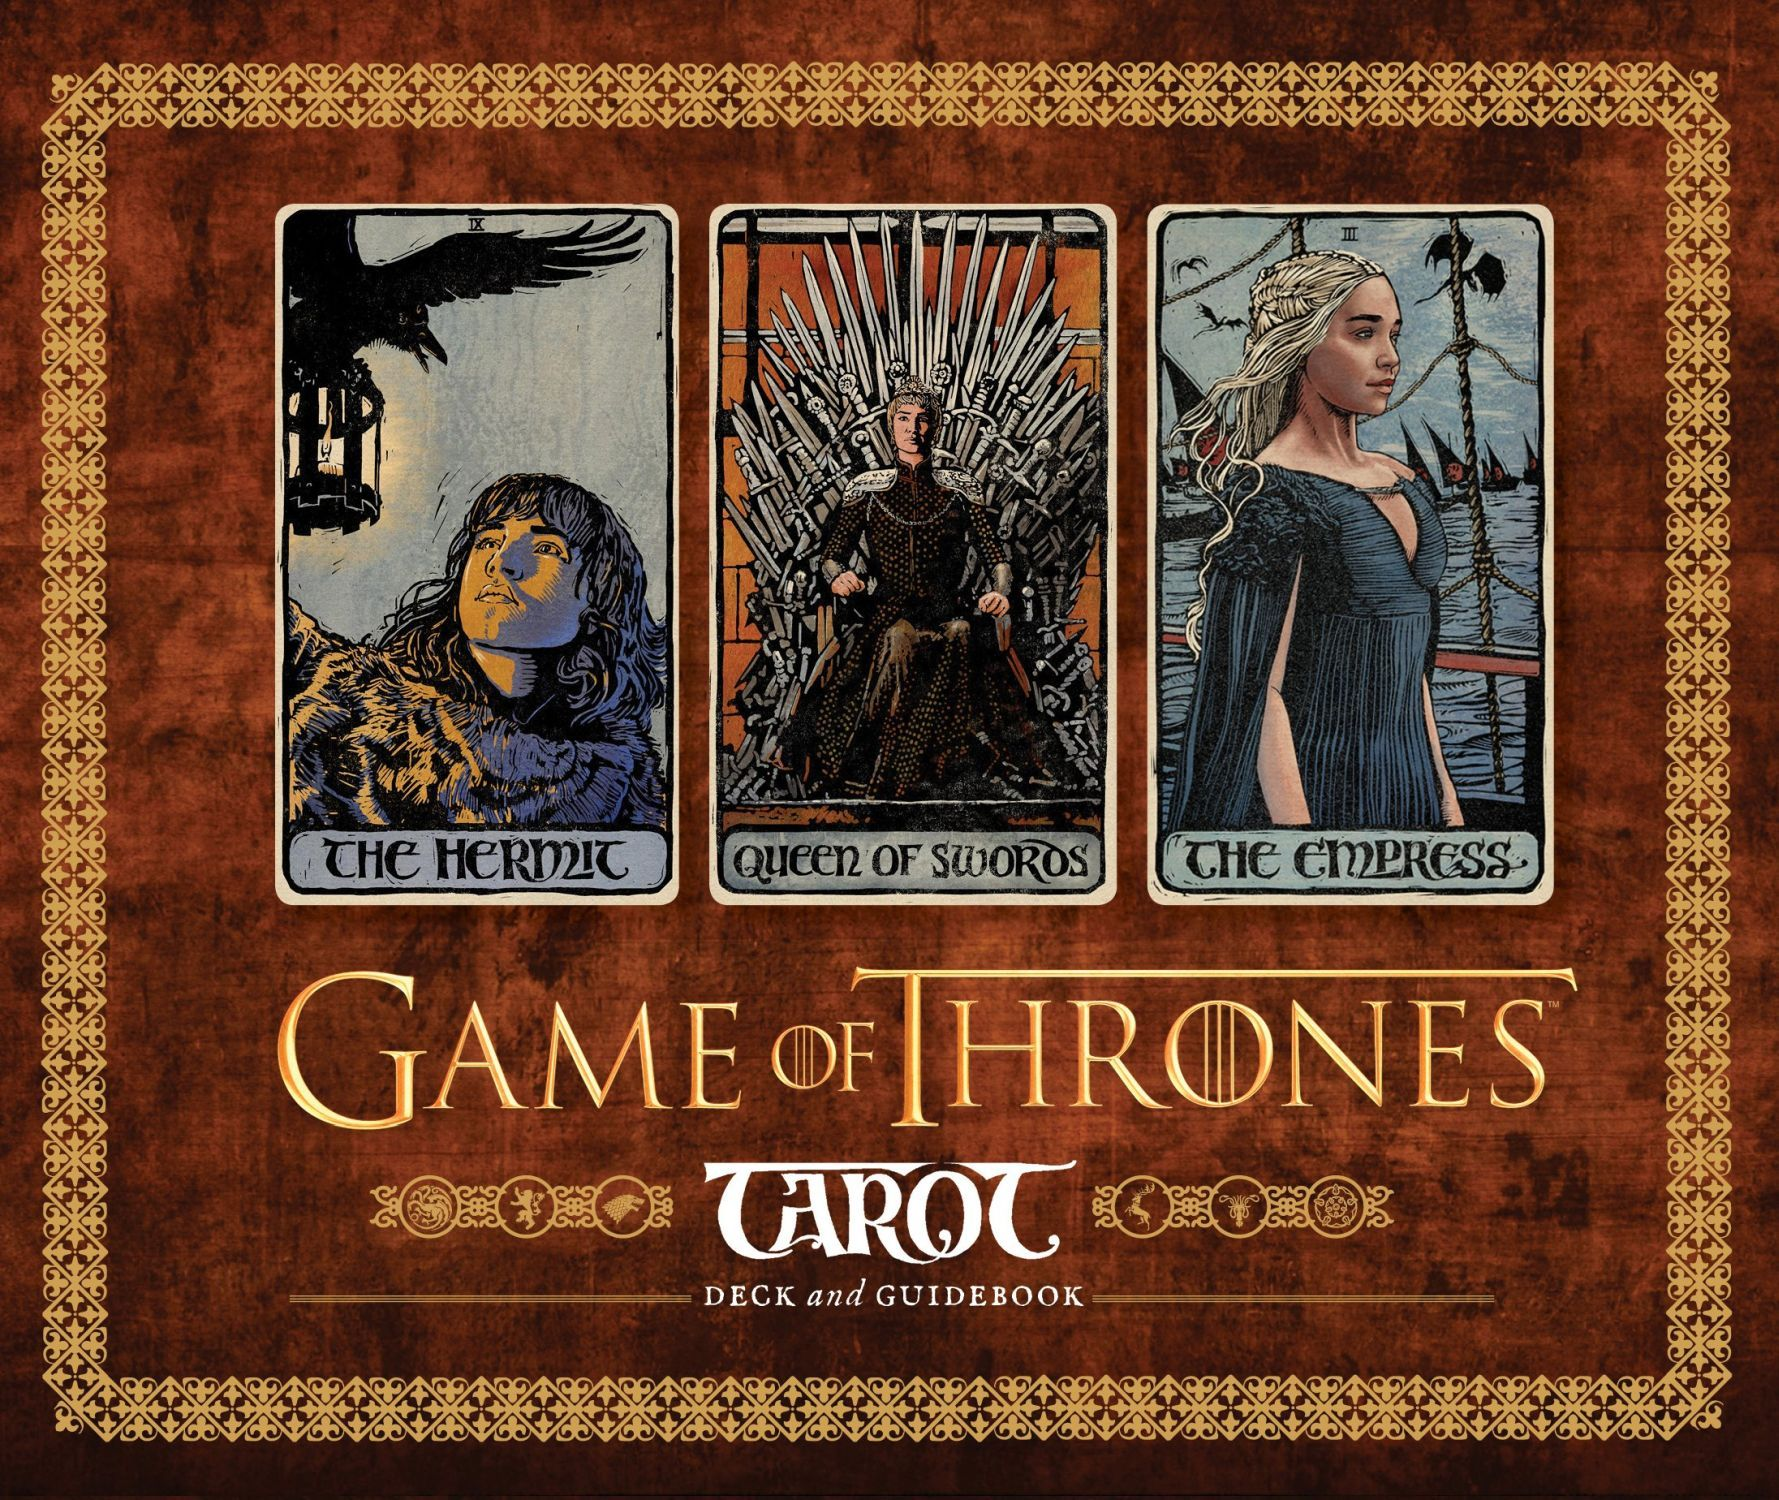 Game of Thrones: Tarot Cards (Deck and Guidebook) - 1